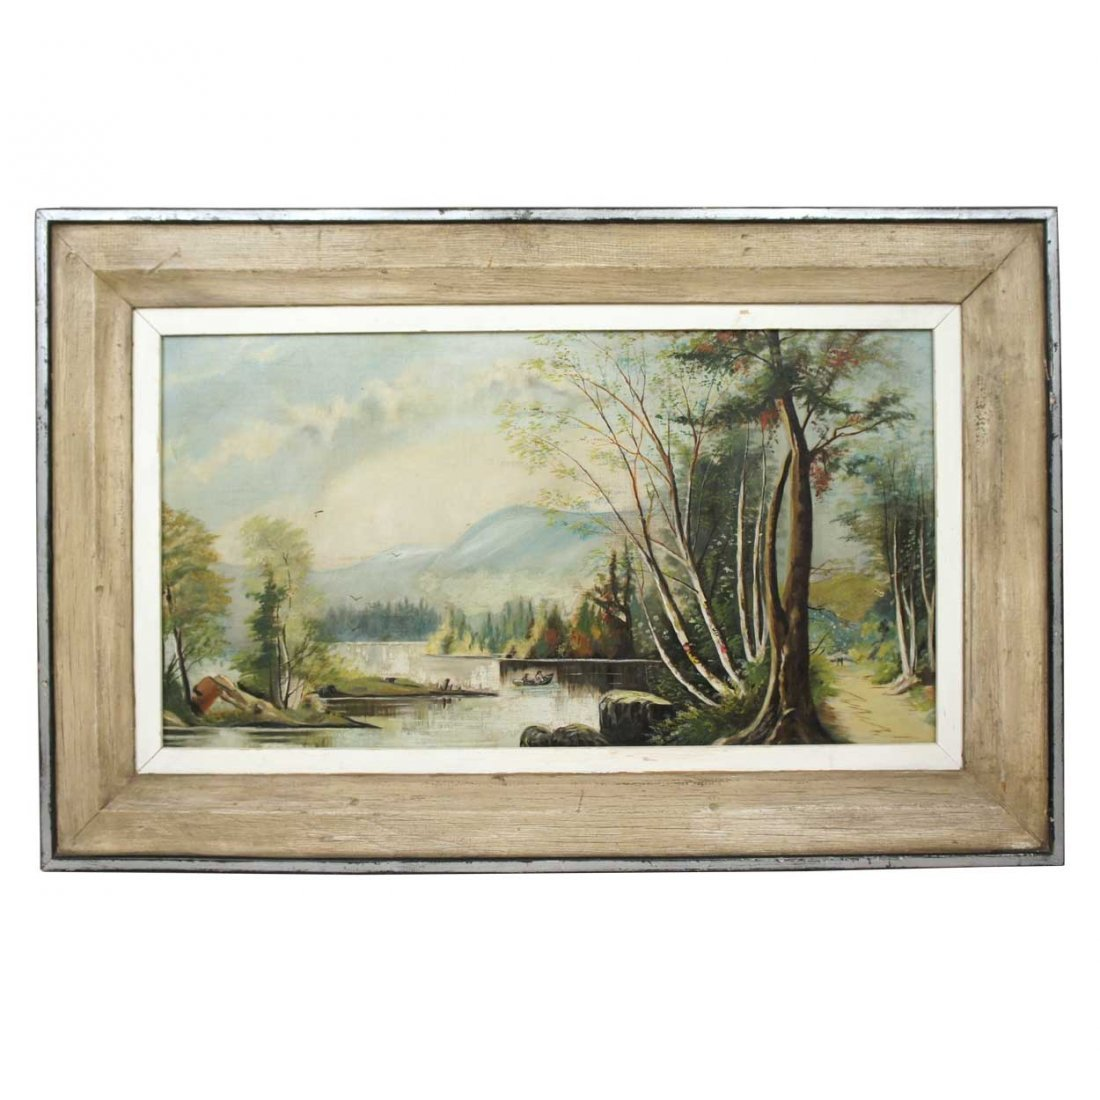 562: An American Victorian Oil on Canvas Landscape Pain